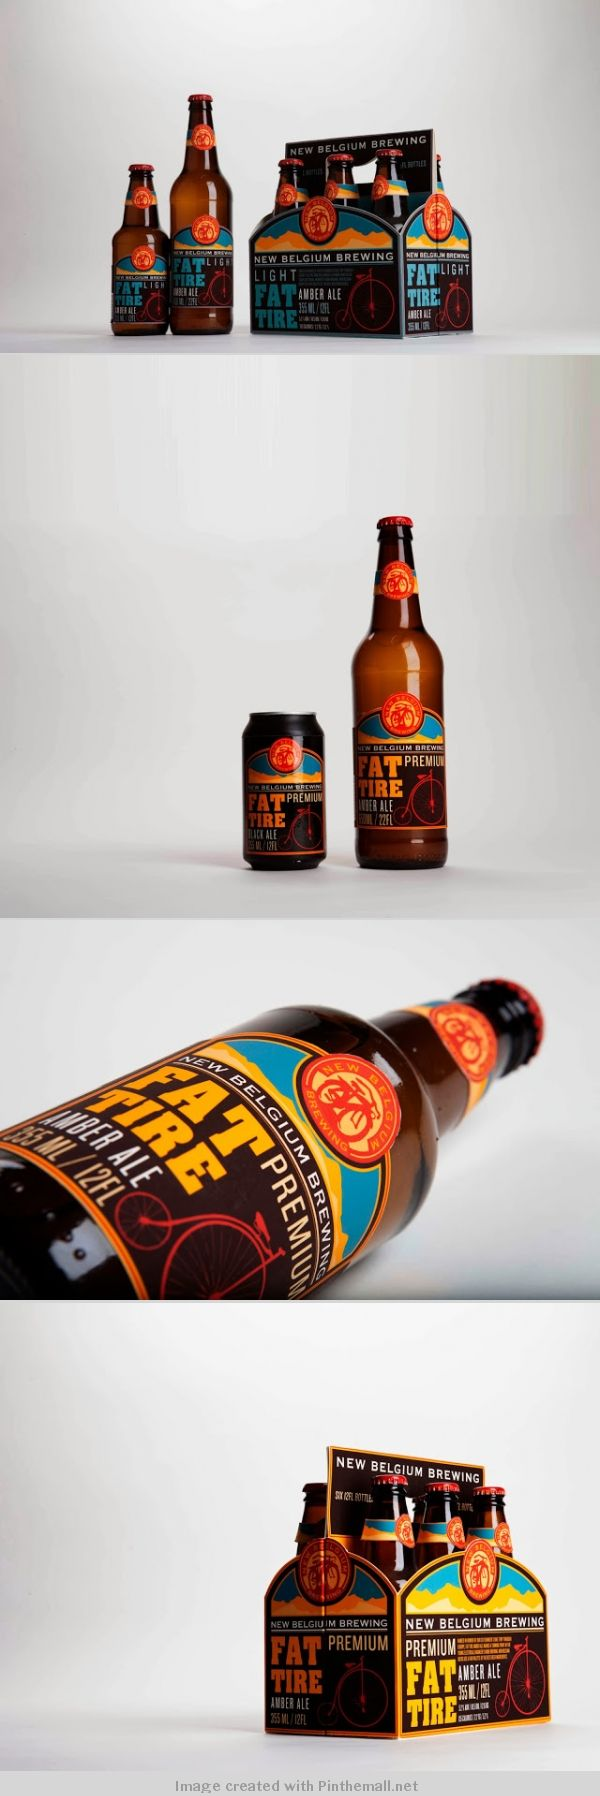 Fat Tire Beer Redesigned (Student Project) Study in #typography #packaging PD